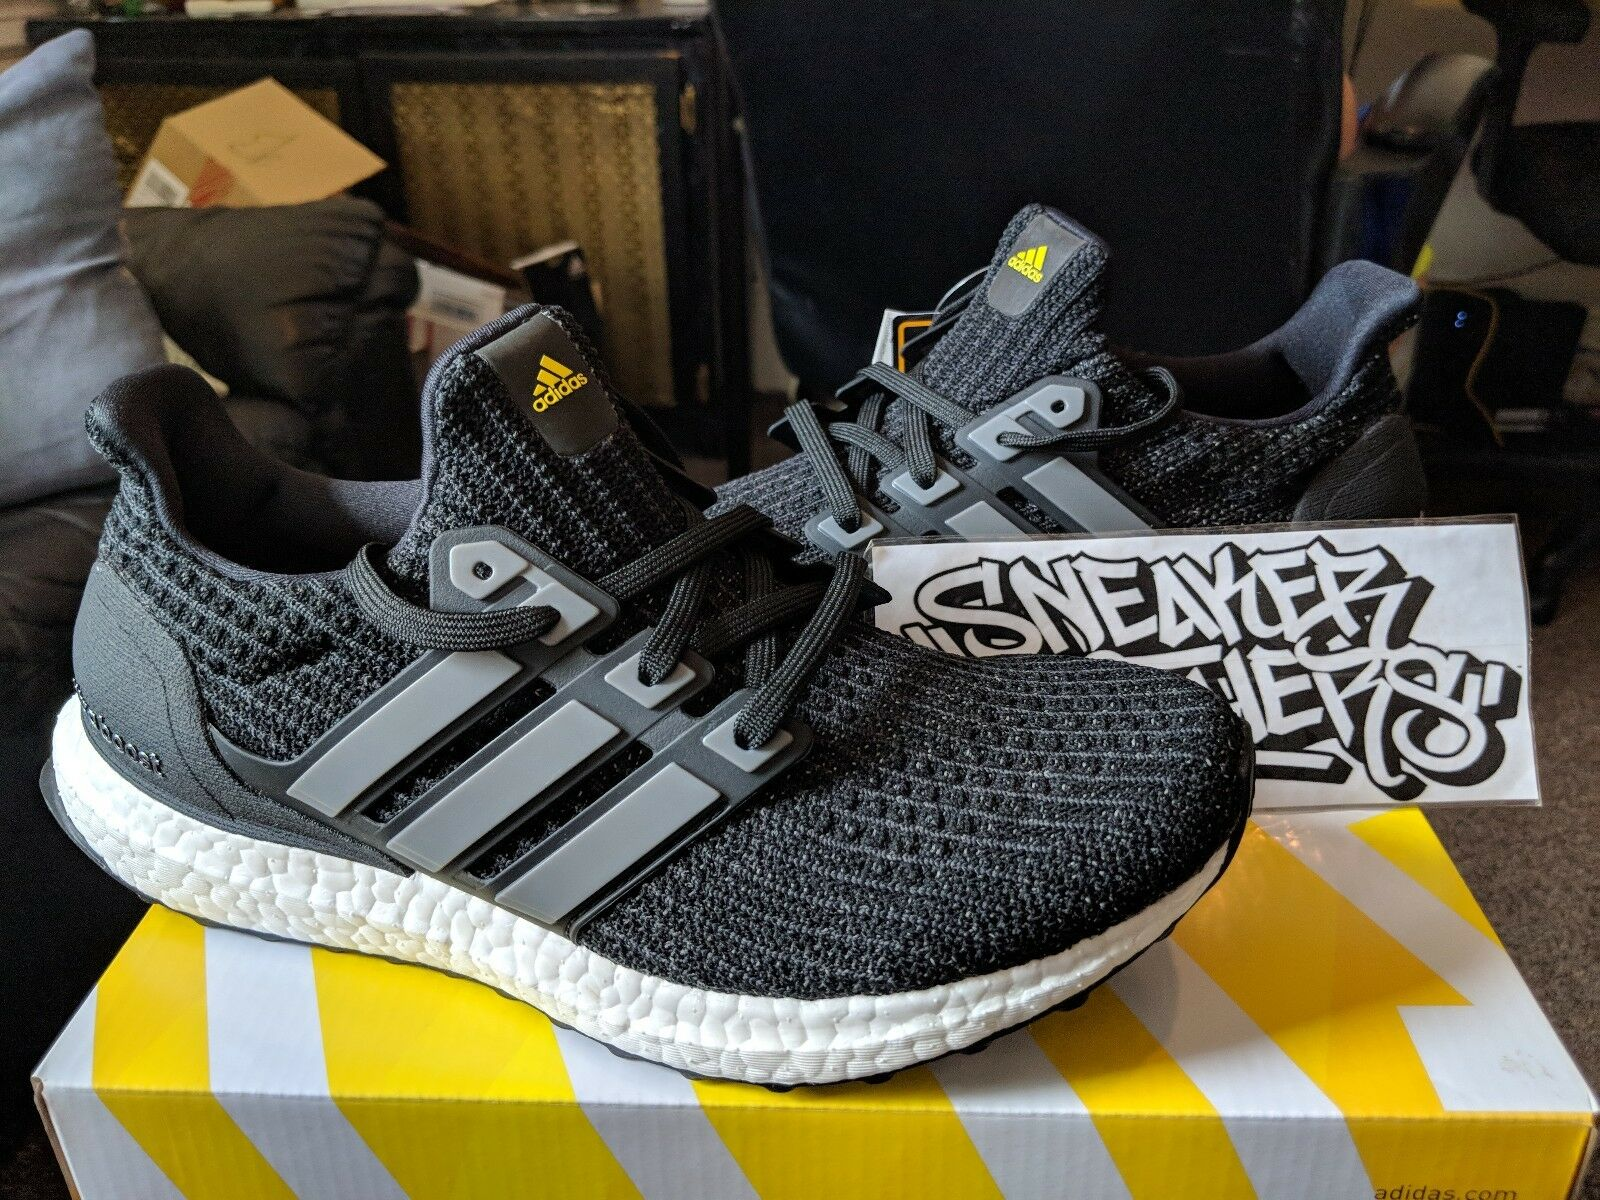 Adidas Ultra Boost M LTD 4.0 5th Anniversary Reflective Black Yellow 3M BB6220